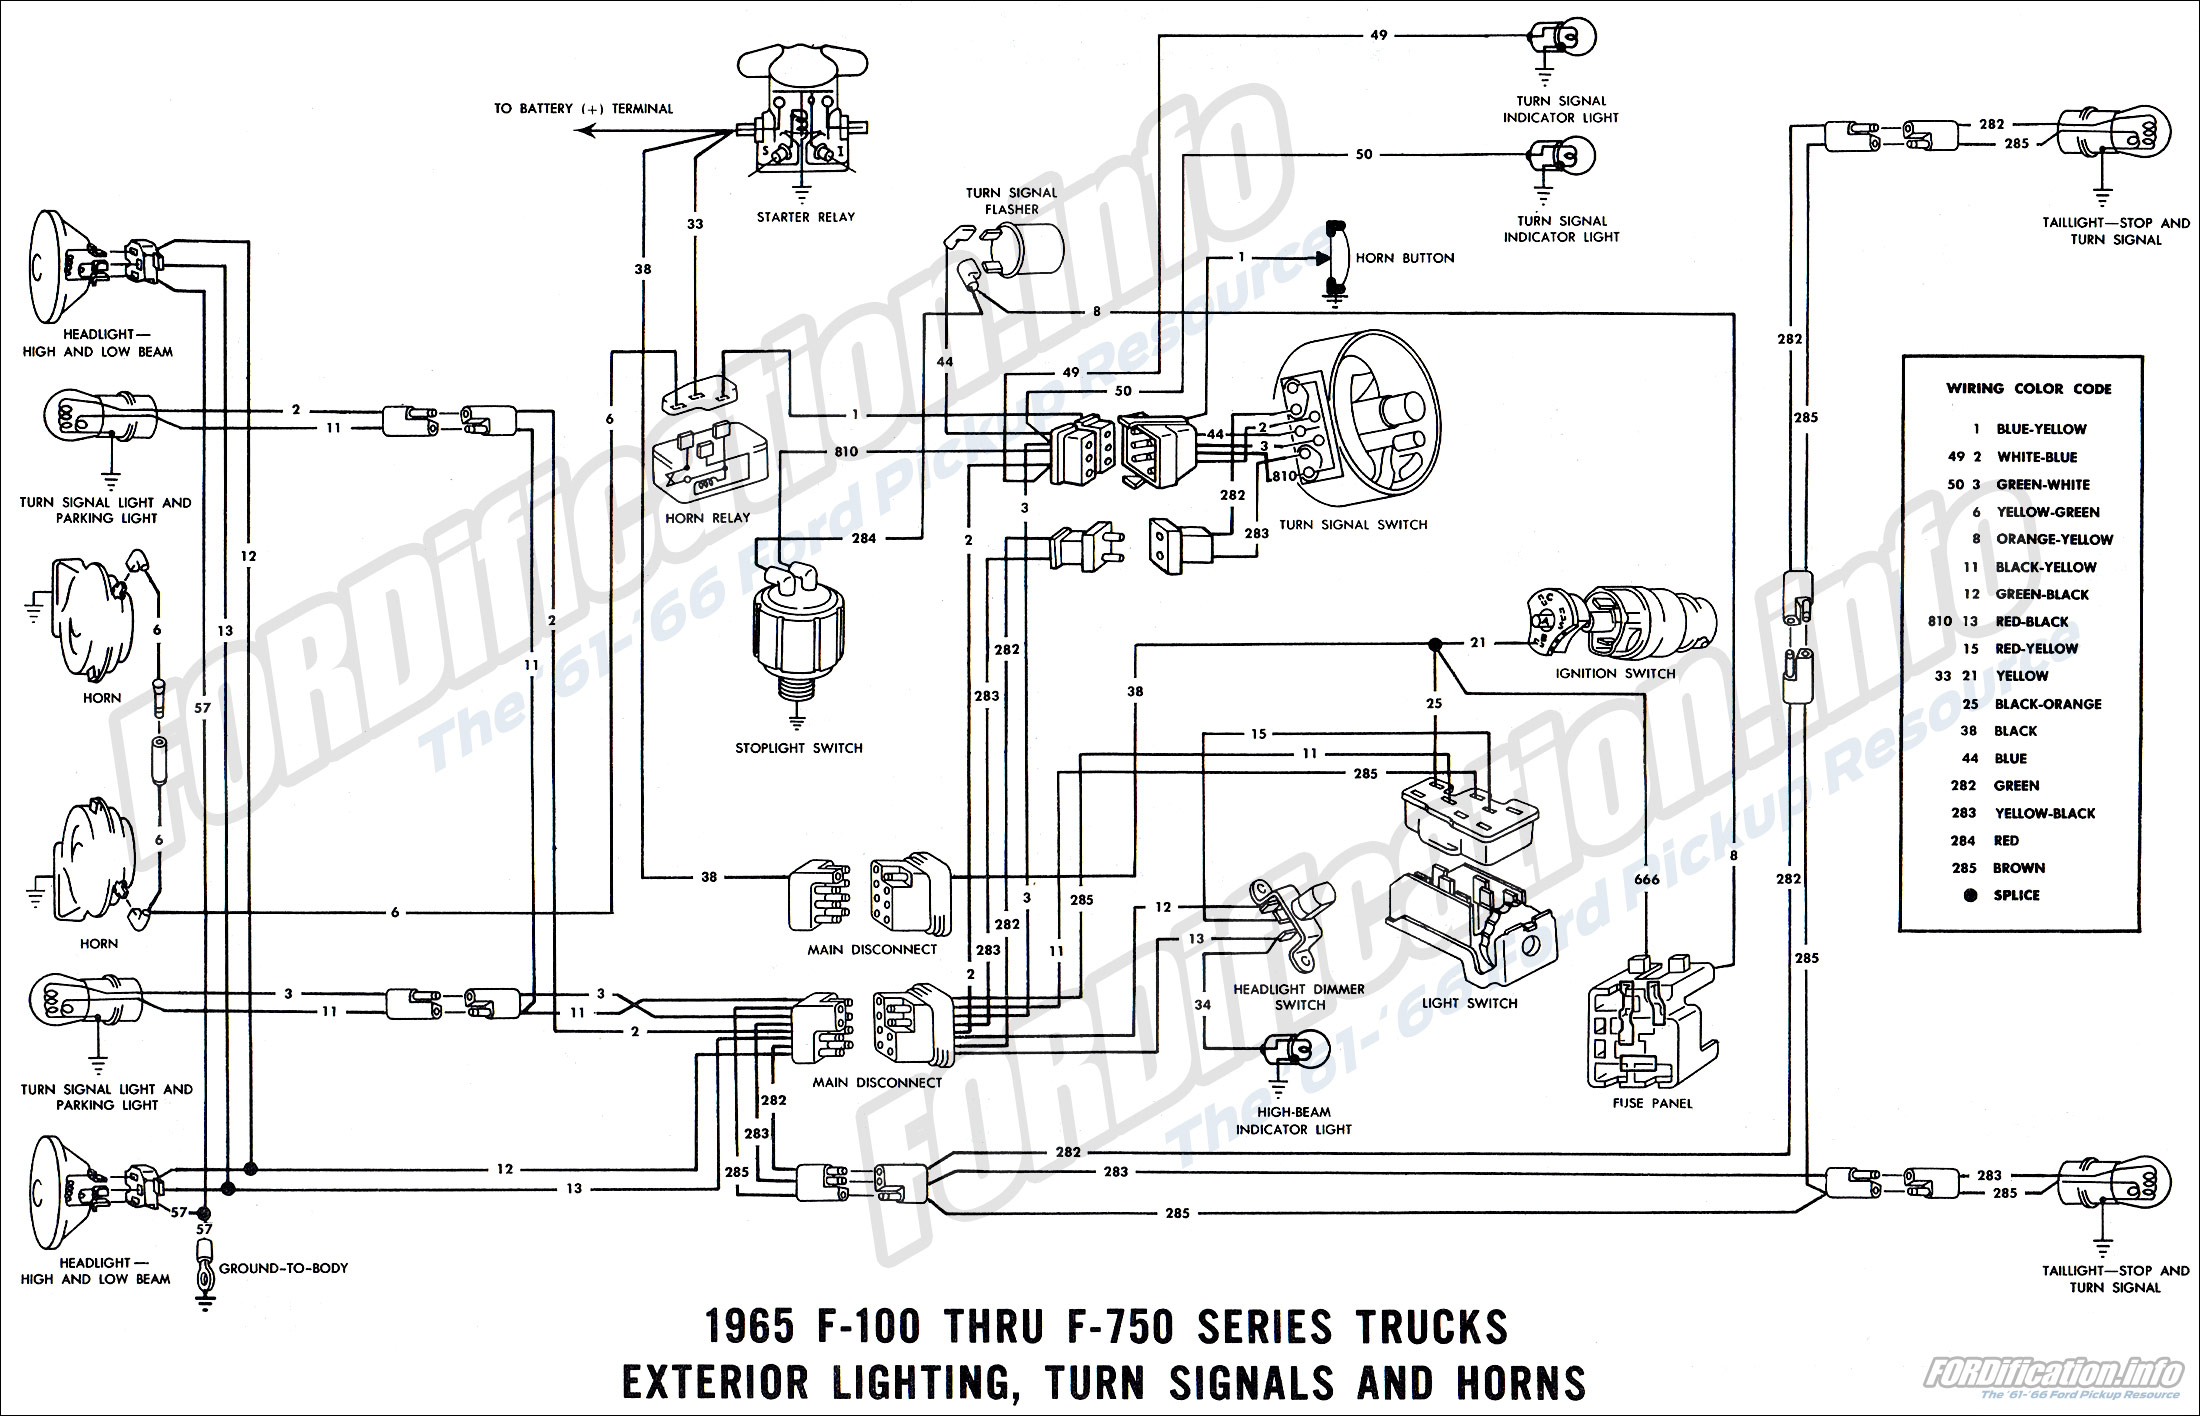 1964 ford ignition switch diagram 98 honda civic wiring 1965 truck diagrams - fordification.info the '61-'66 pickup resource